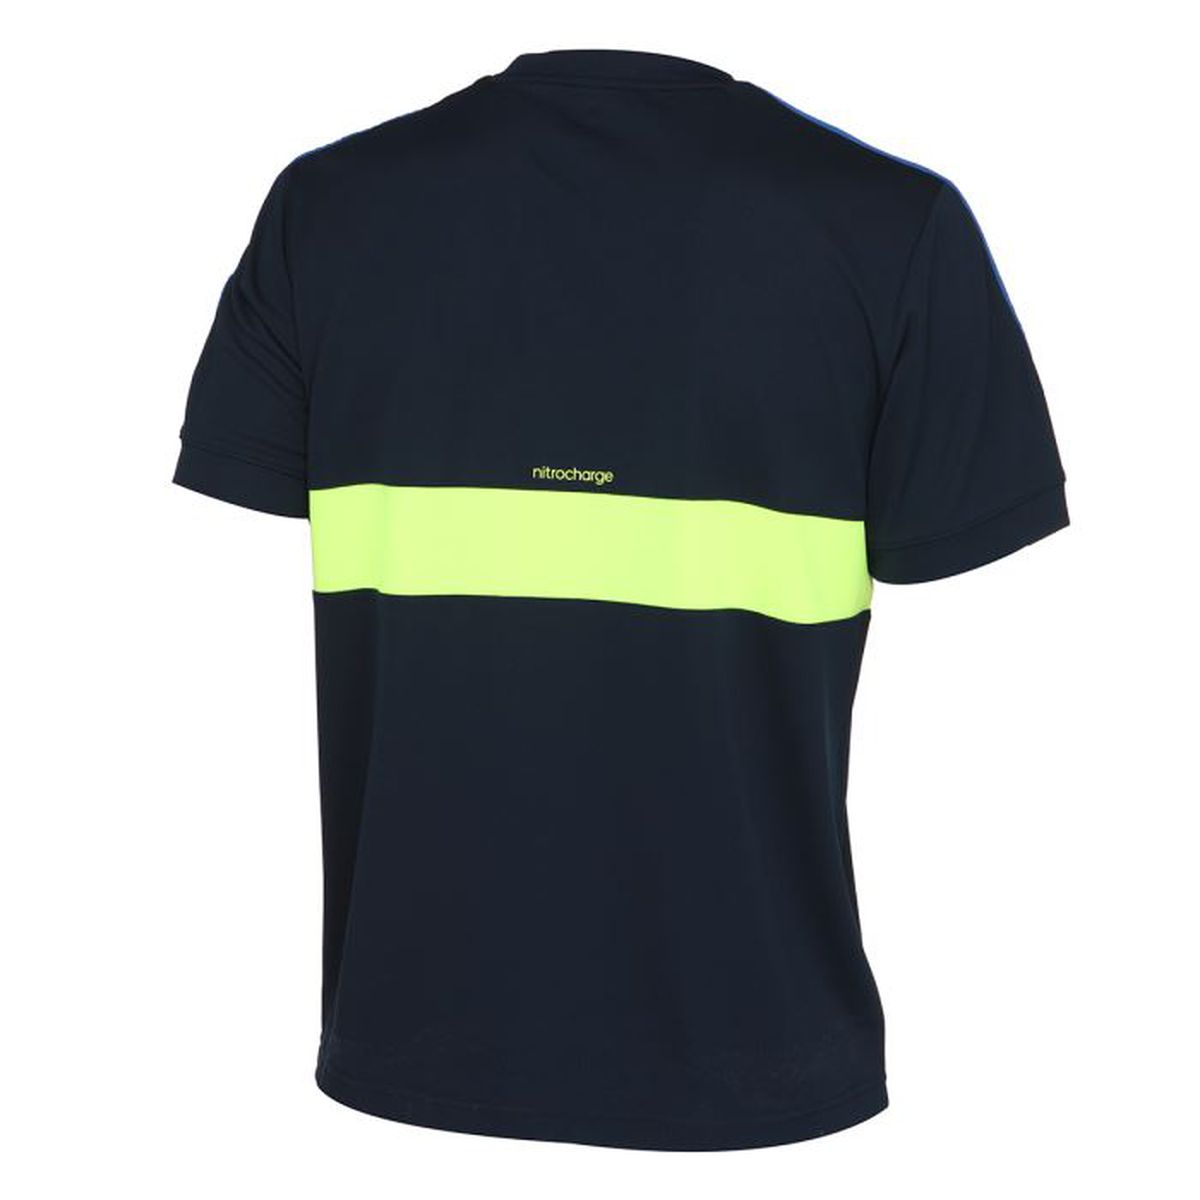 Pas Cdiscount Prix Adidas Nitrocharge Maillot Homme Cher EH9WDI2